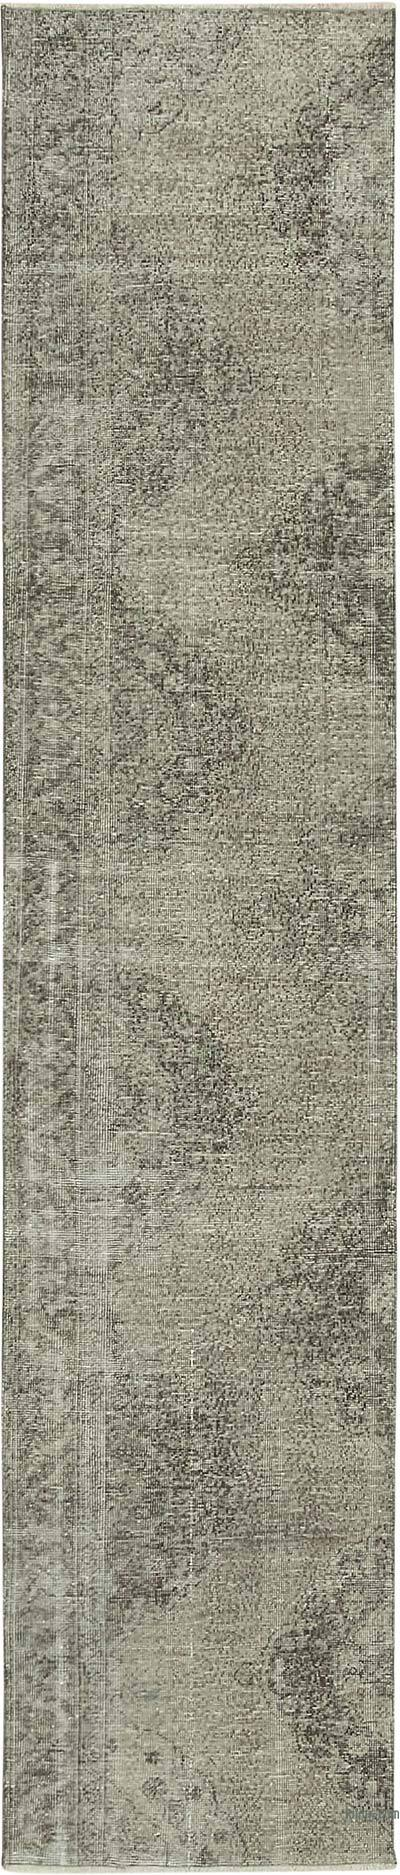 """Grey Over-dyed Turkish Vintage Runner Rug - 2' 6"""" x 11' 7"""" (30 in. x 139 in.)"""